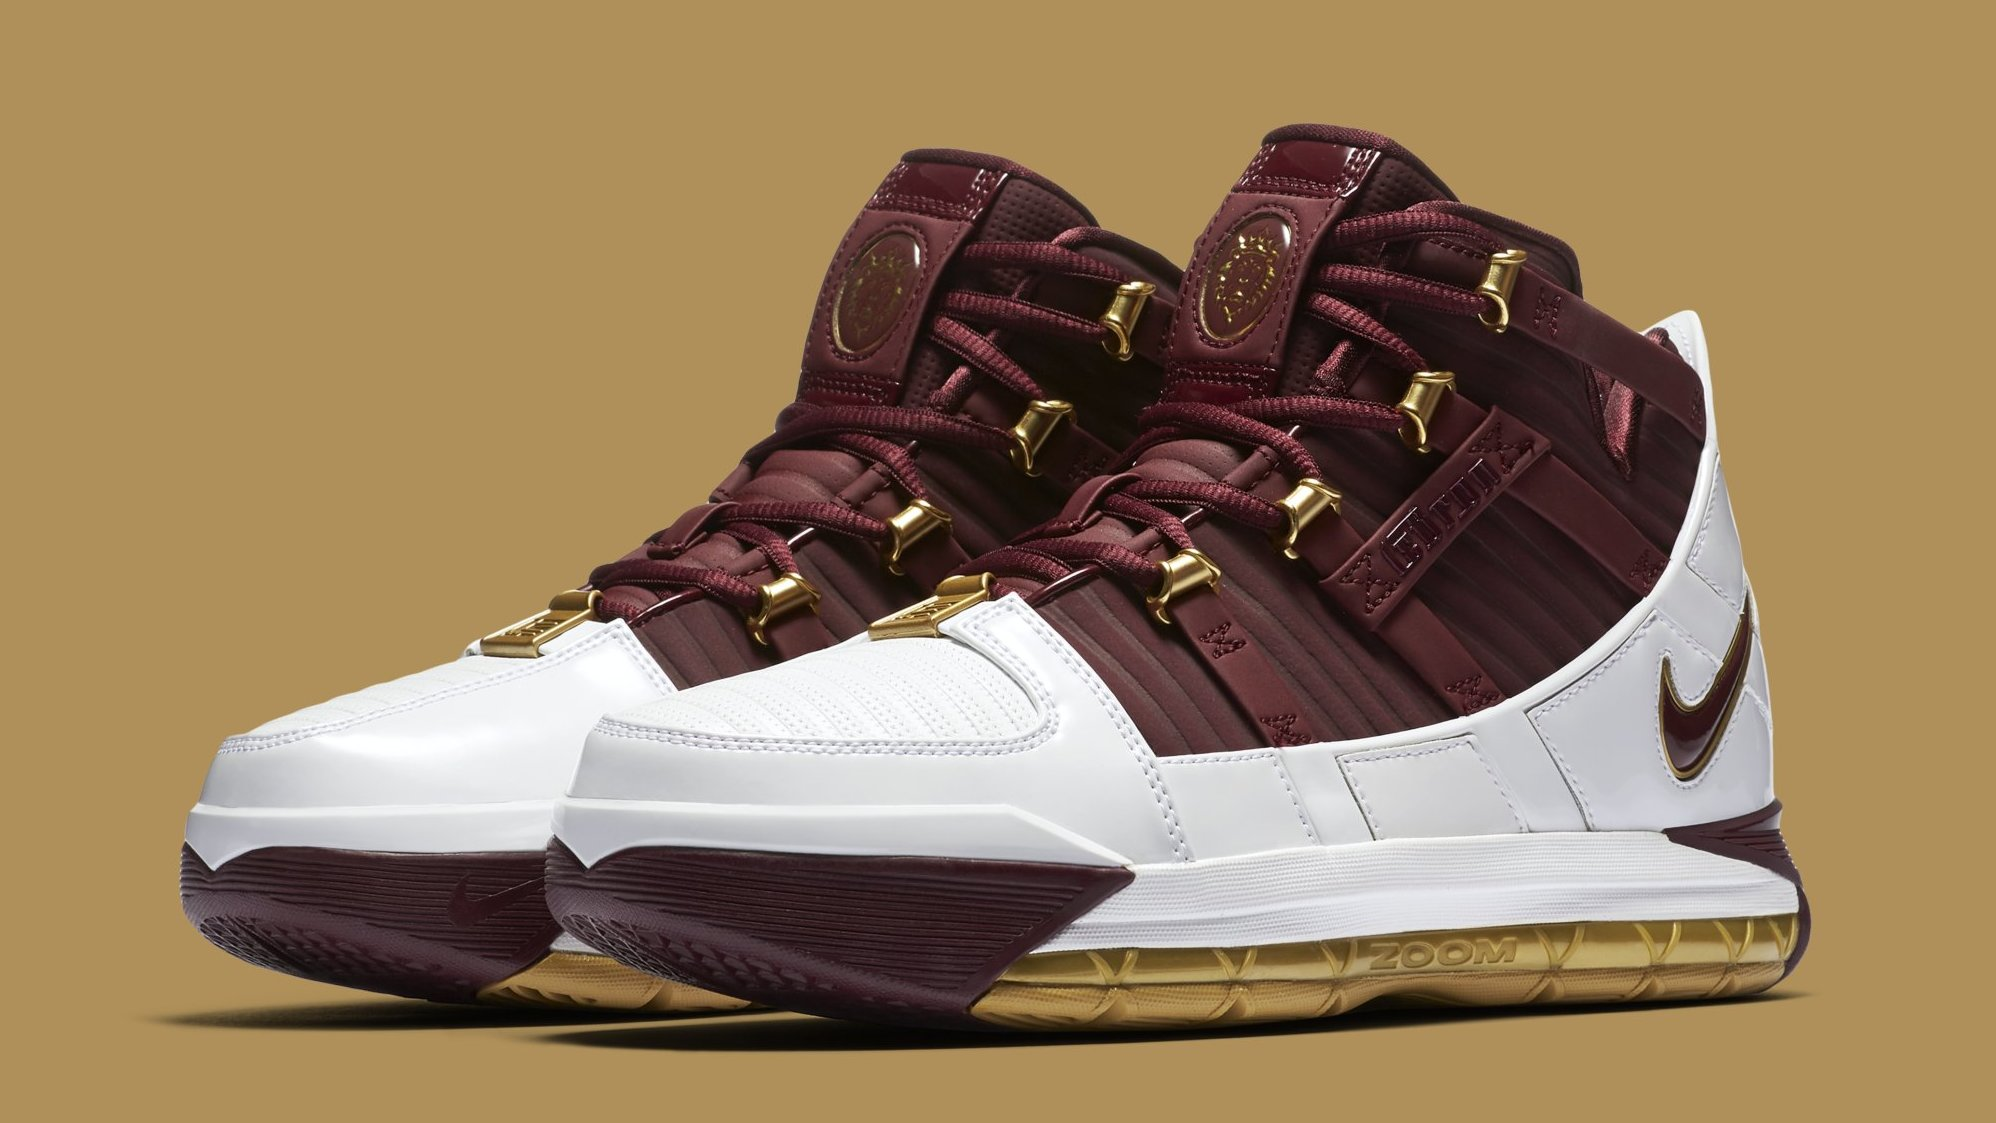 best service 4e037 b754a Nike Zoom LeBron 3 III Christ the King CTK 2018 Release Date   Sole  Collector